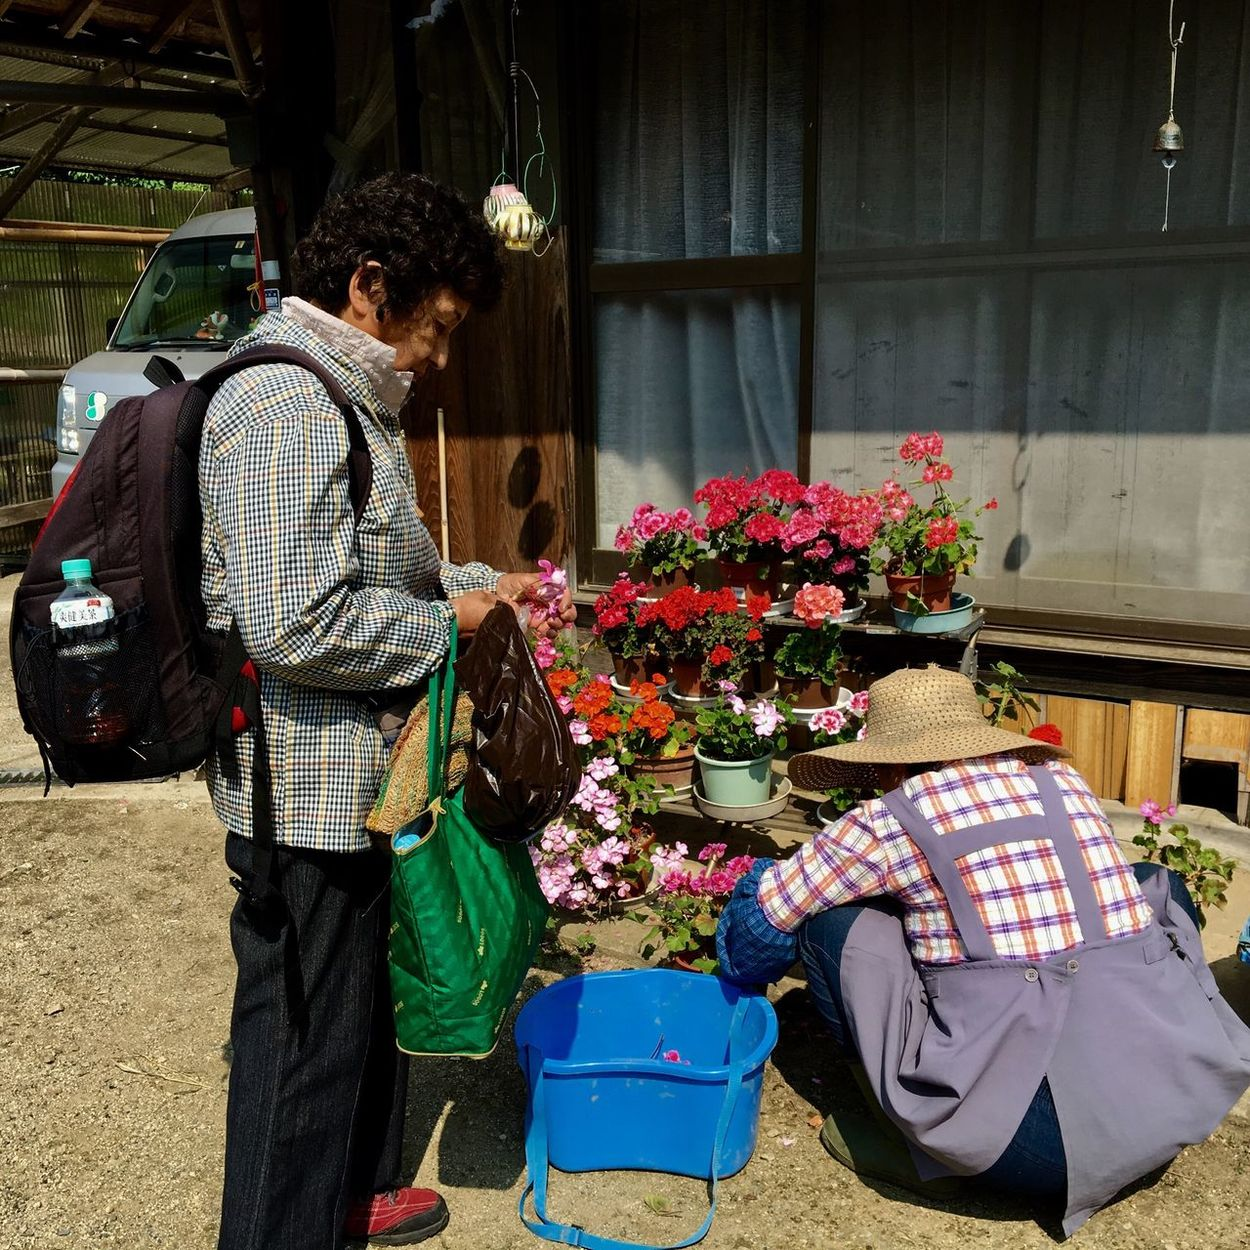 Subject : Two women - One Taking Care of the Flowers and the Other Looking at Them by Her Side. Beauty In Nature Real People People Wemen Crouching Standing Flower Freshness Multi Colored Day Outdoors . Taken at Yamano in Fukuyama, Japan on July 23, 2017 ( Submitted on July 6, 2017 )